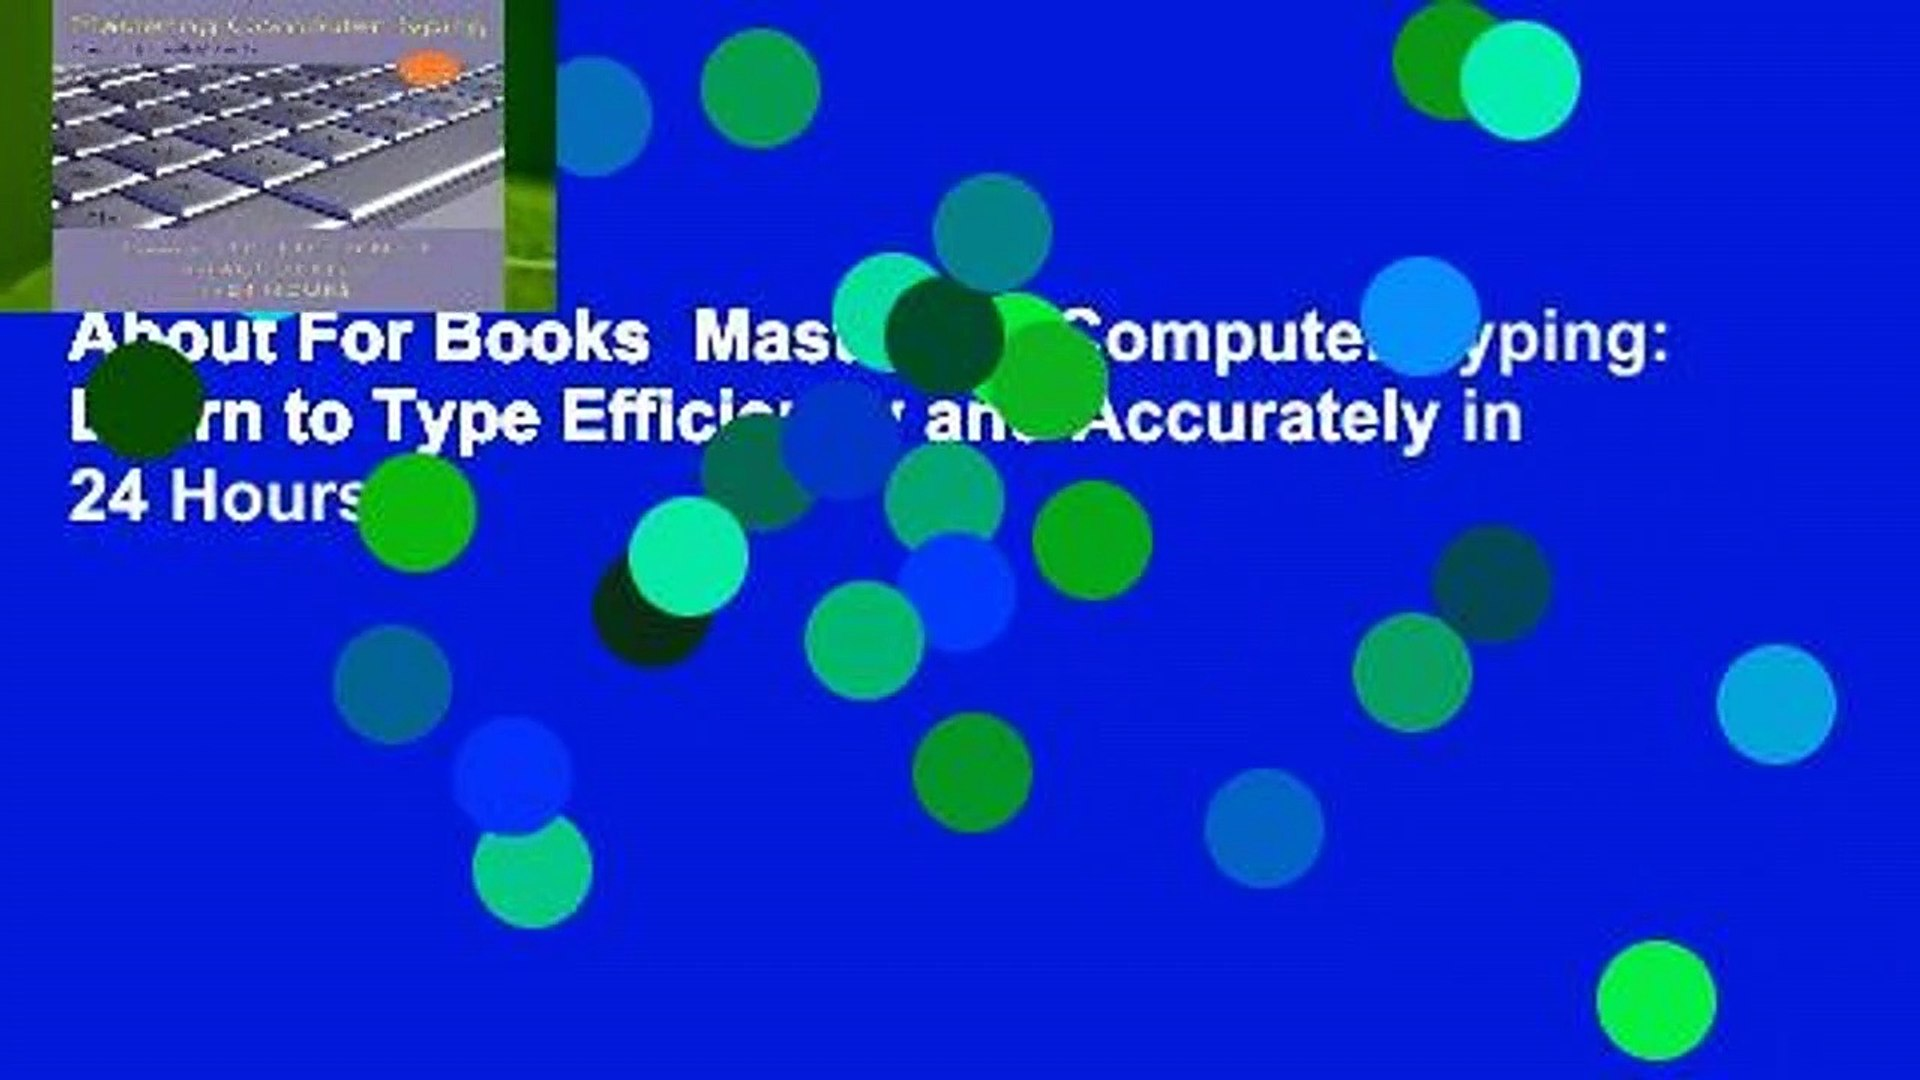 About For Books  Mastering Computer Typing: Learn to Type Efficiently and Accurately in 24 Hours